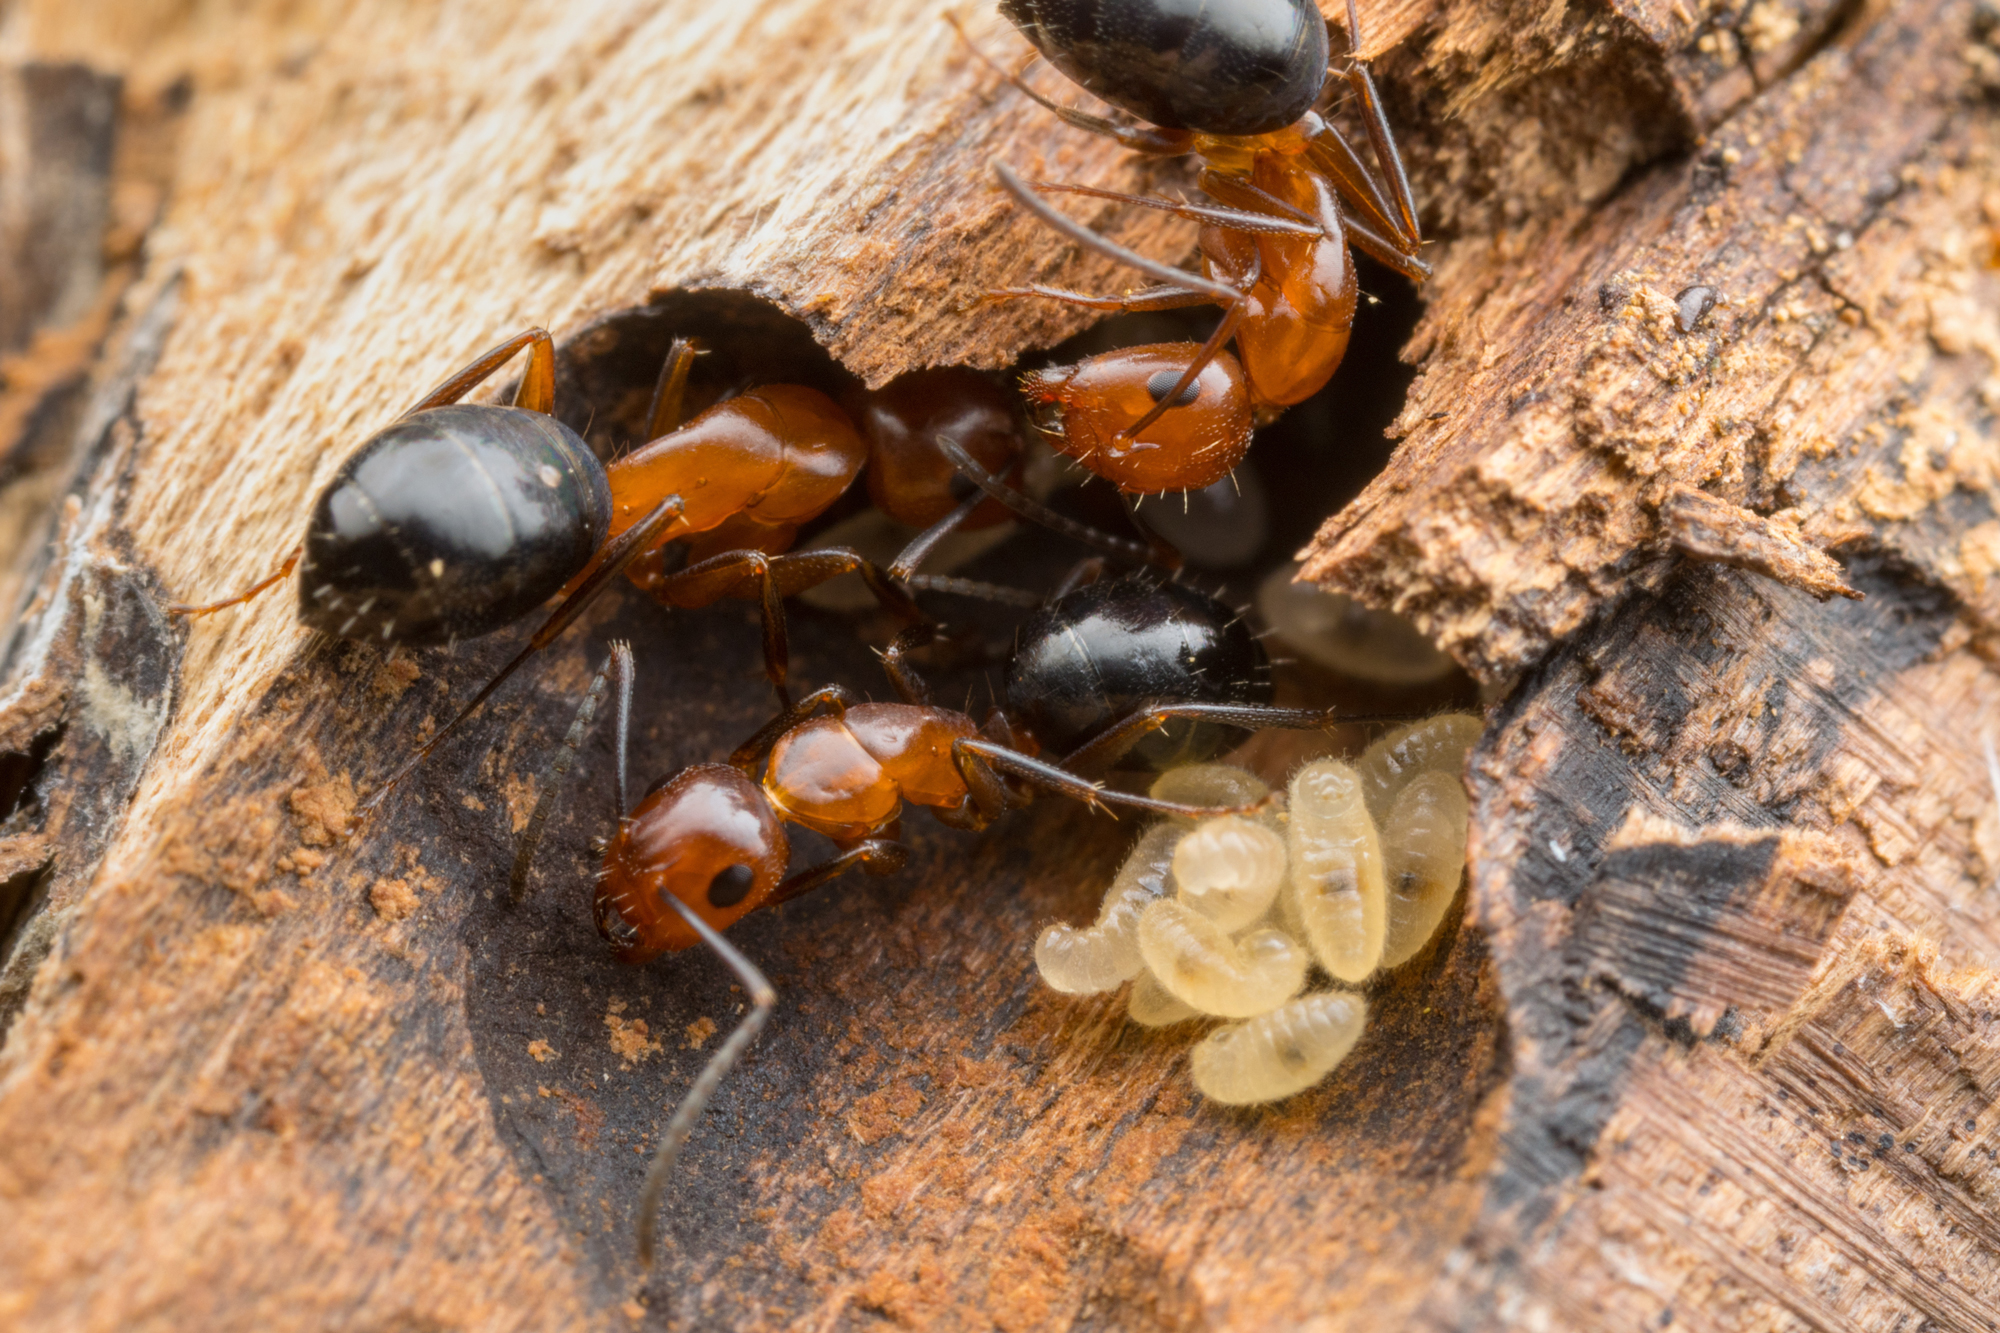 Photo of carpenter ants with eggs on a rotting piece of wood.